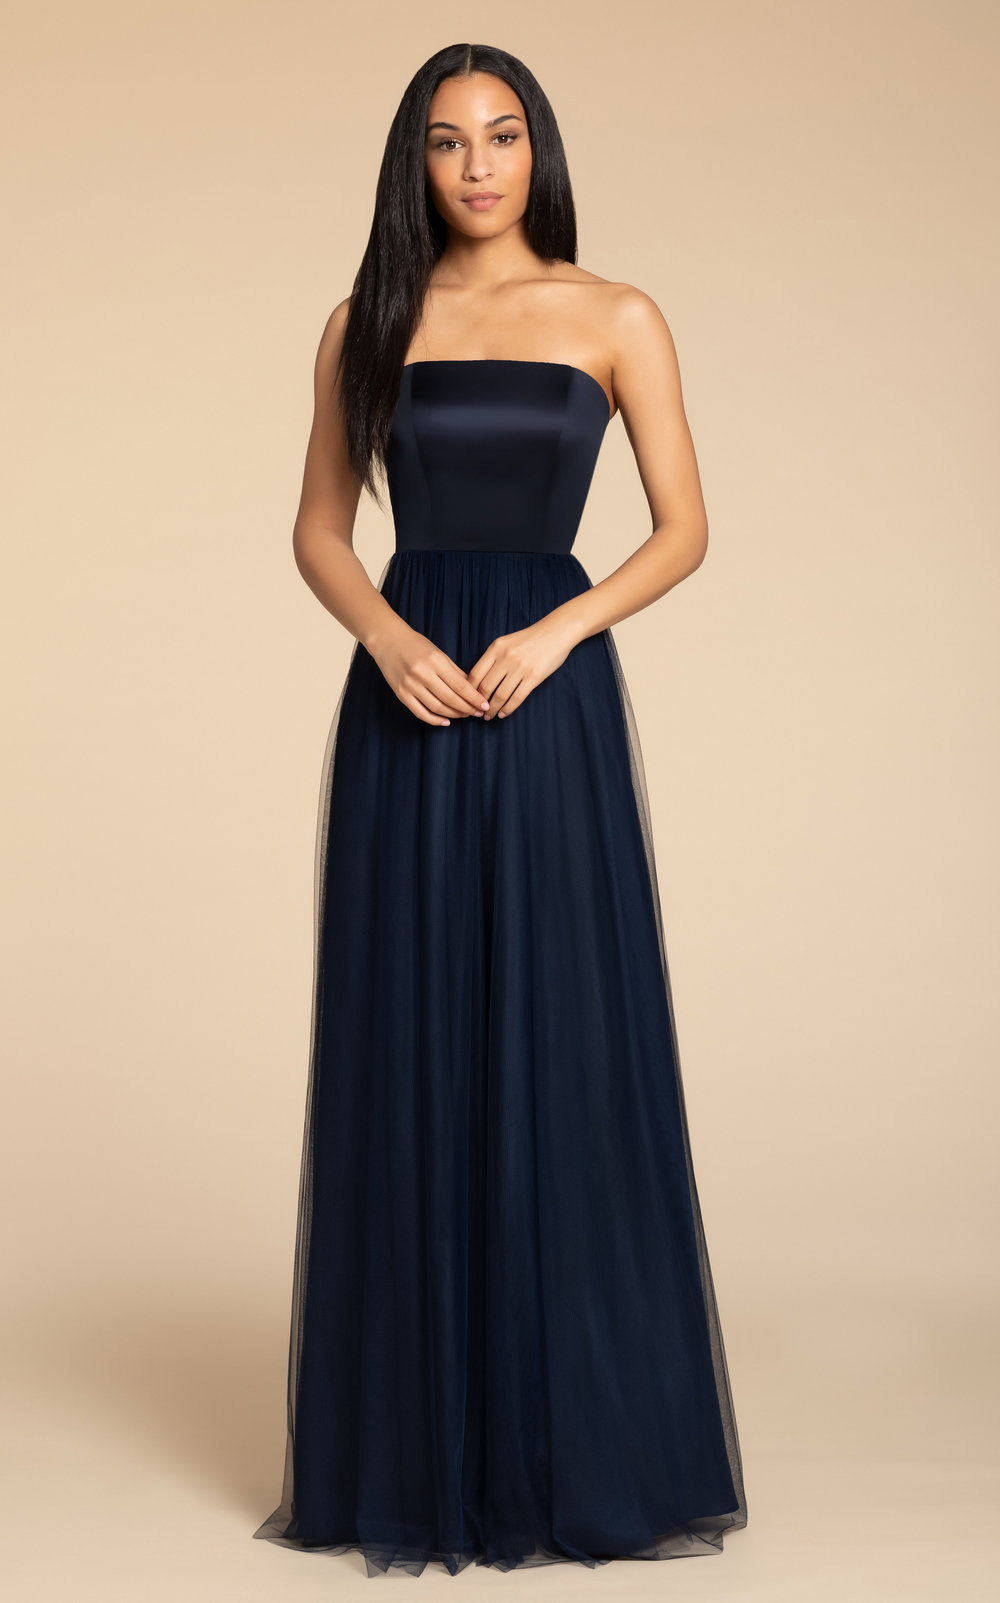 5916 -  Hayley Paige Occasions bridesmaids gown - Indigo English net A-line gown, satin strapless bodice, natural waist, open strap detail at back.    Available in 6 colors